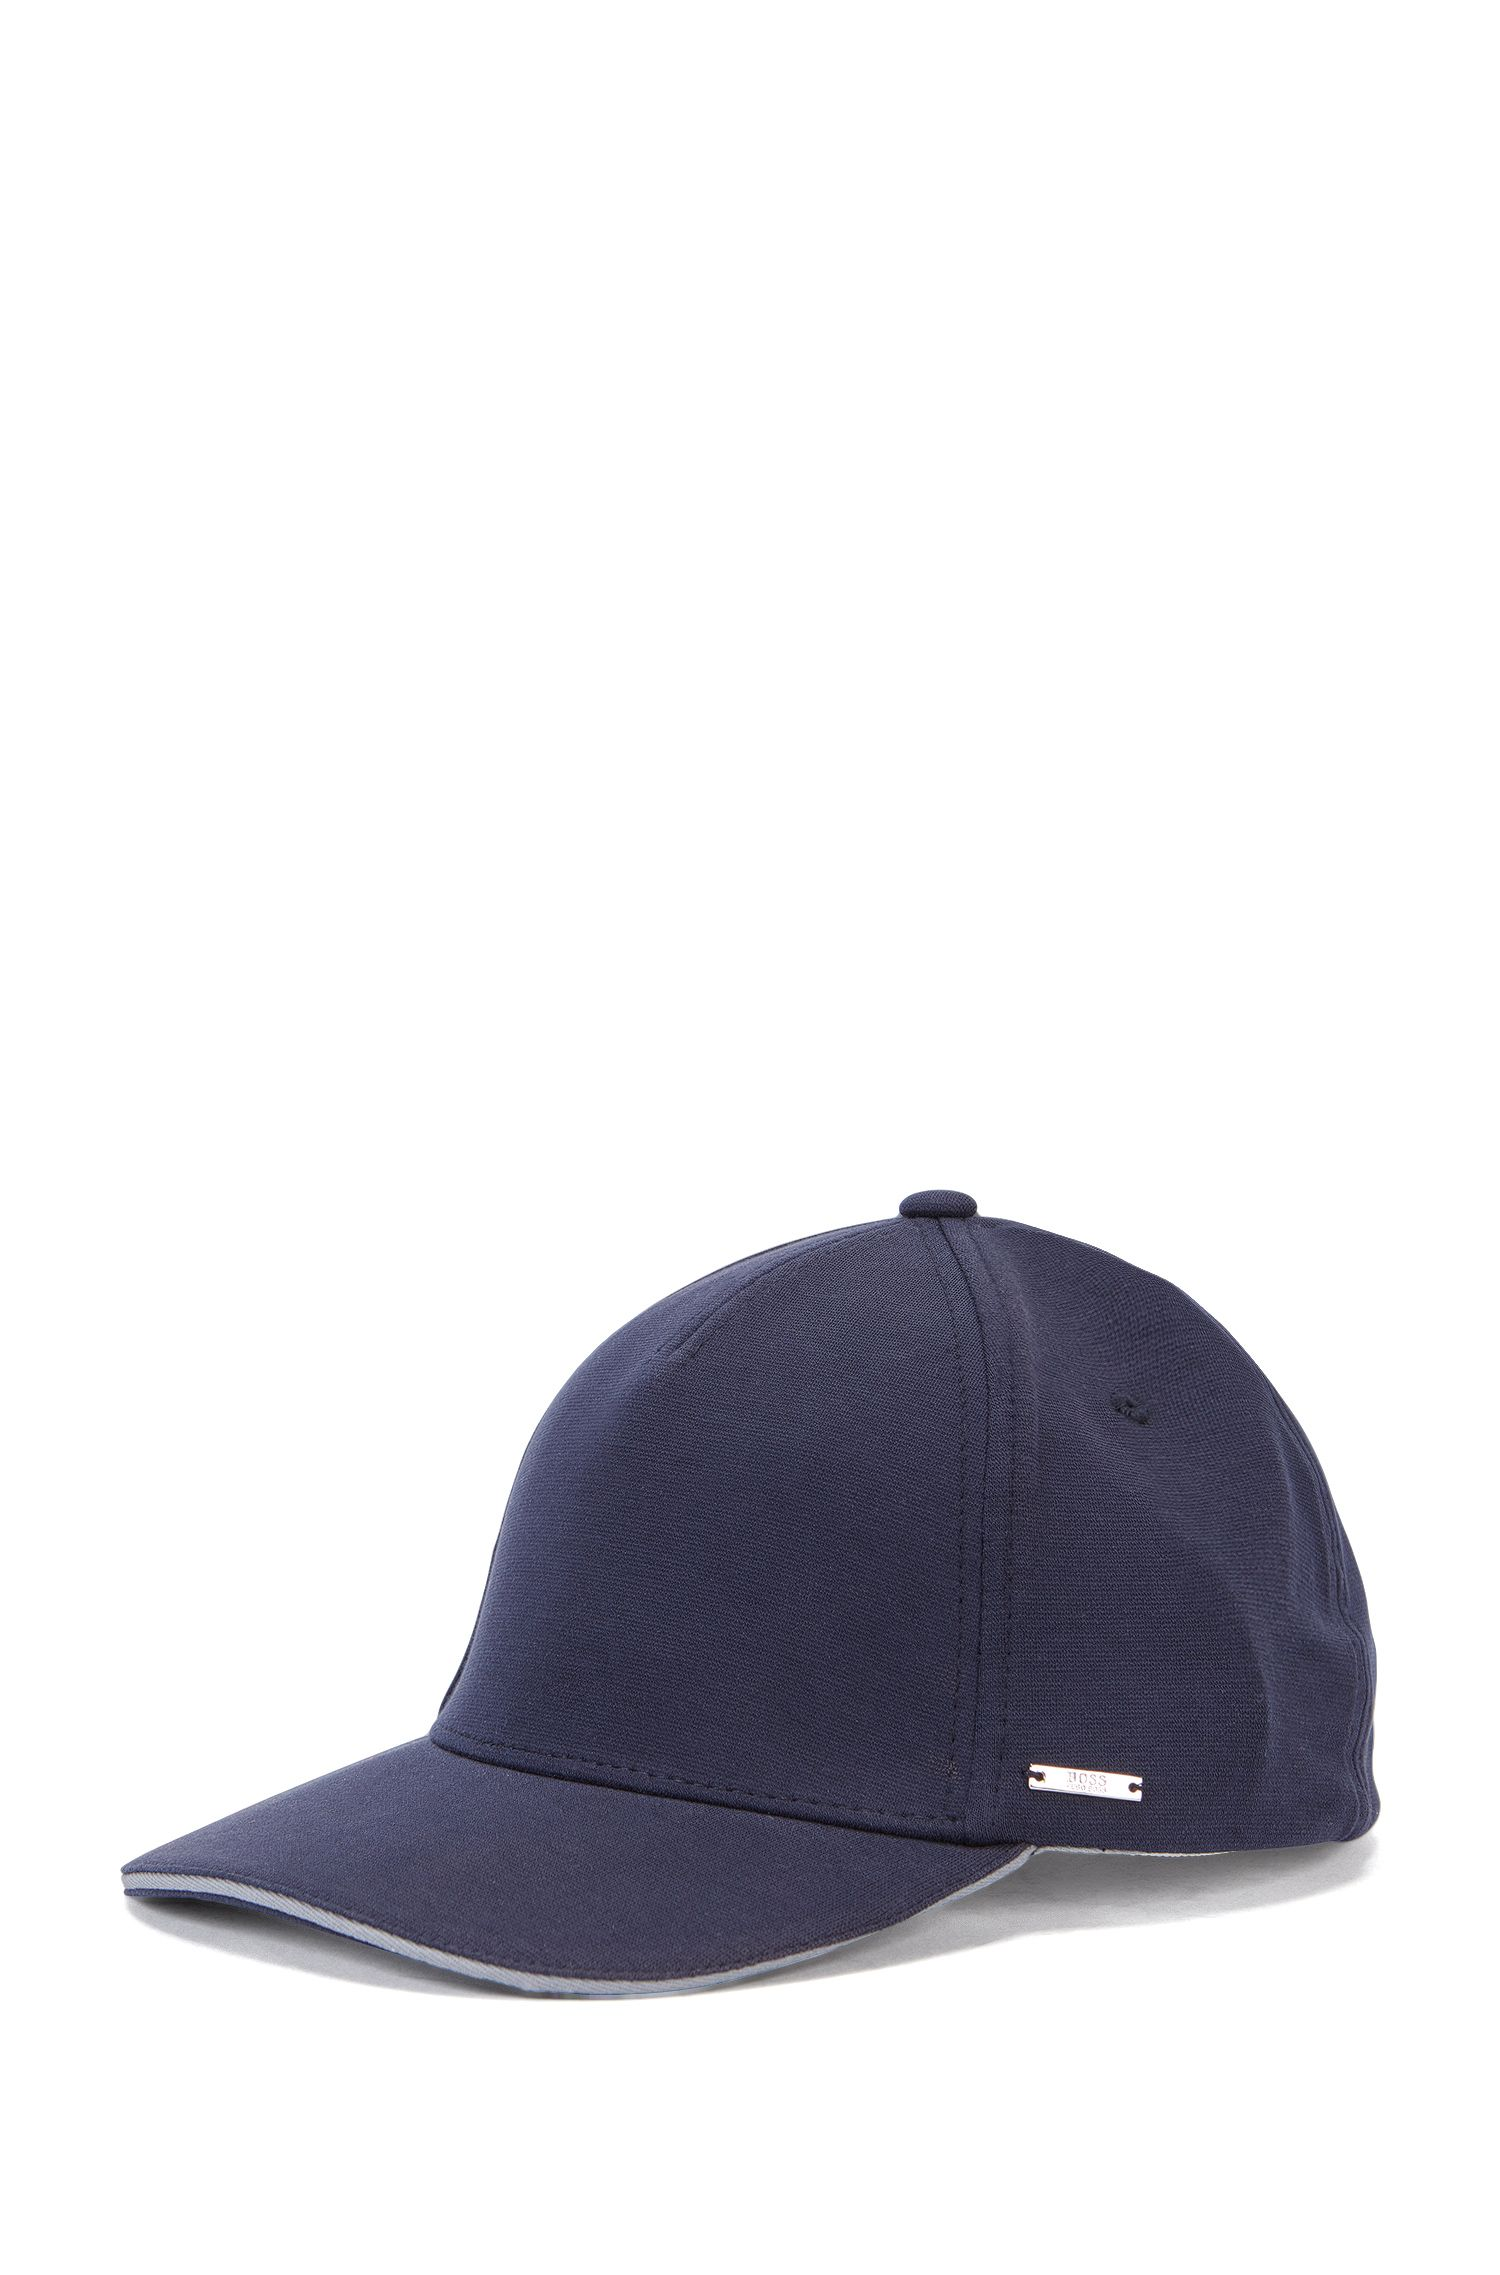 'Serios' | Cotton Blend Twill Cap